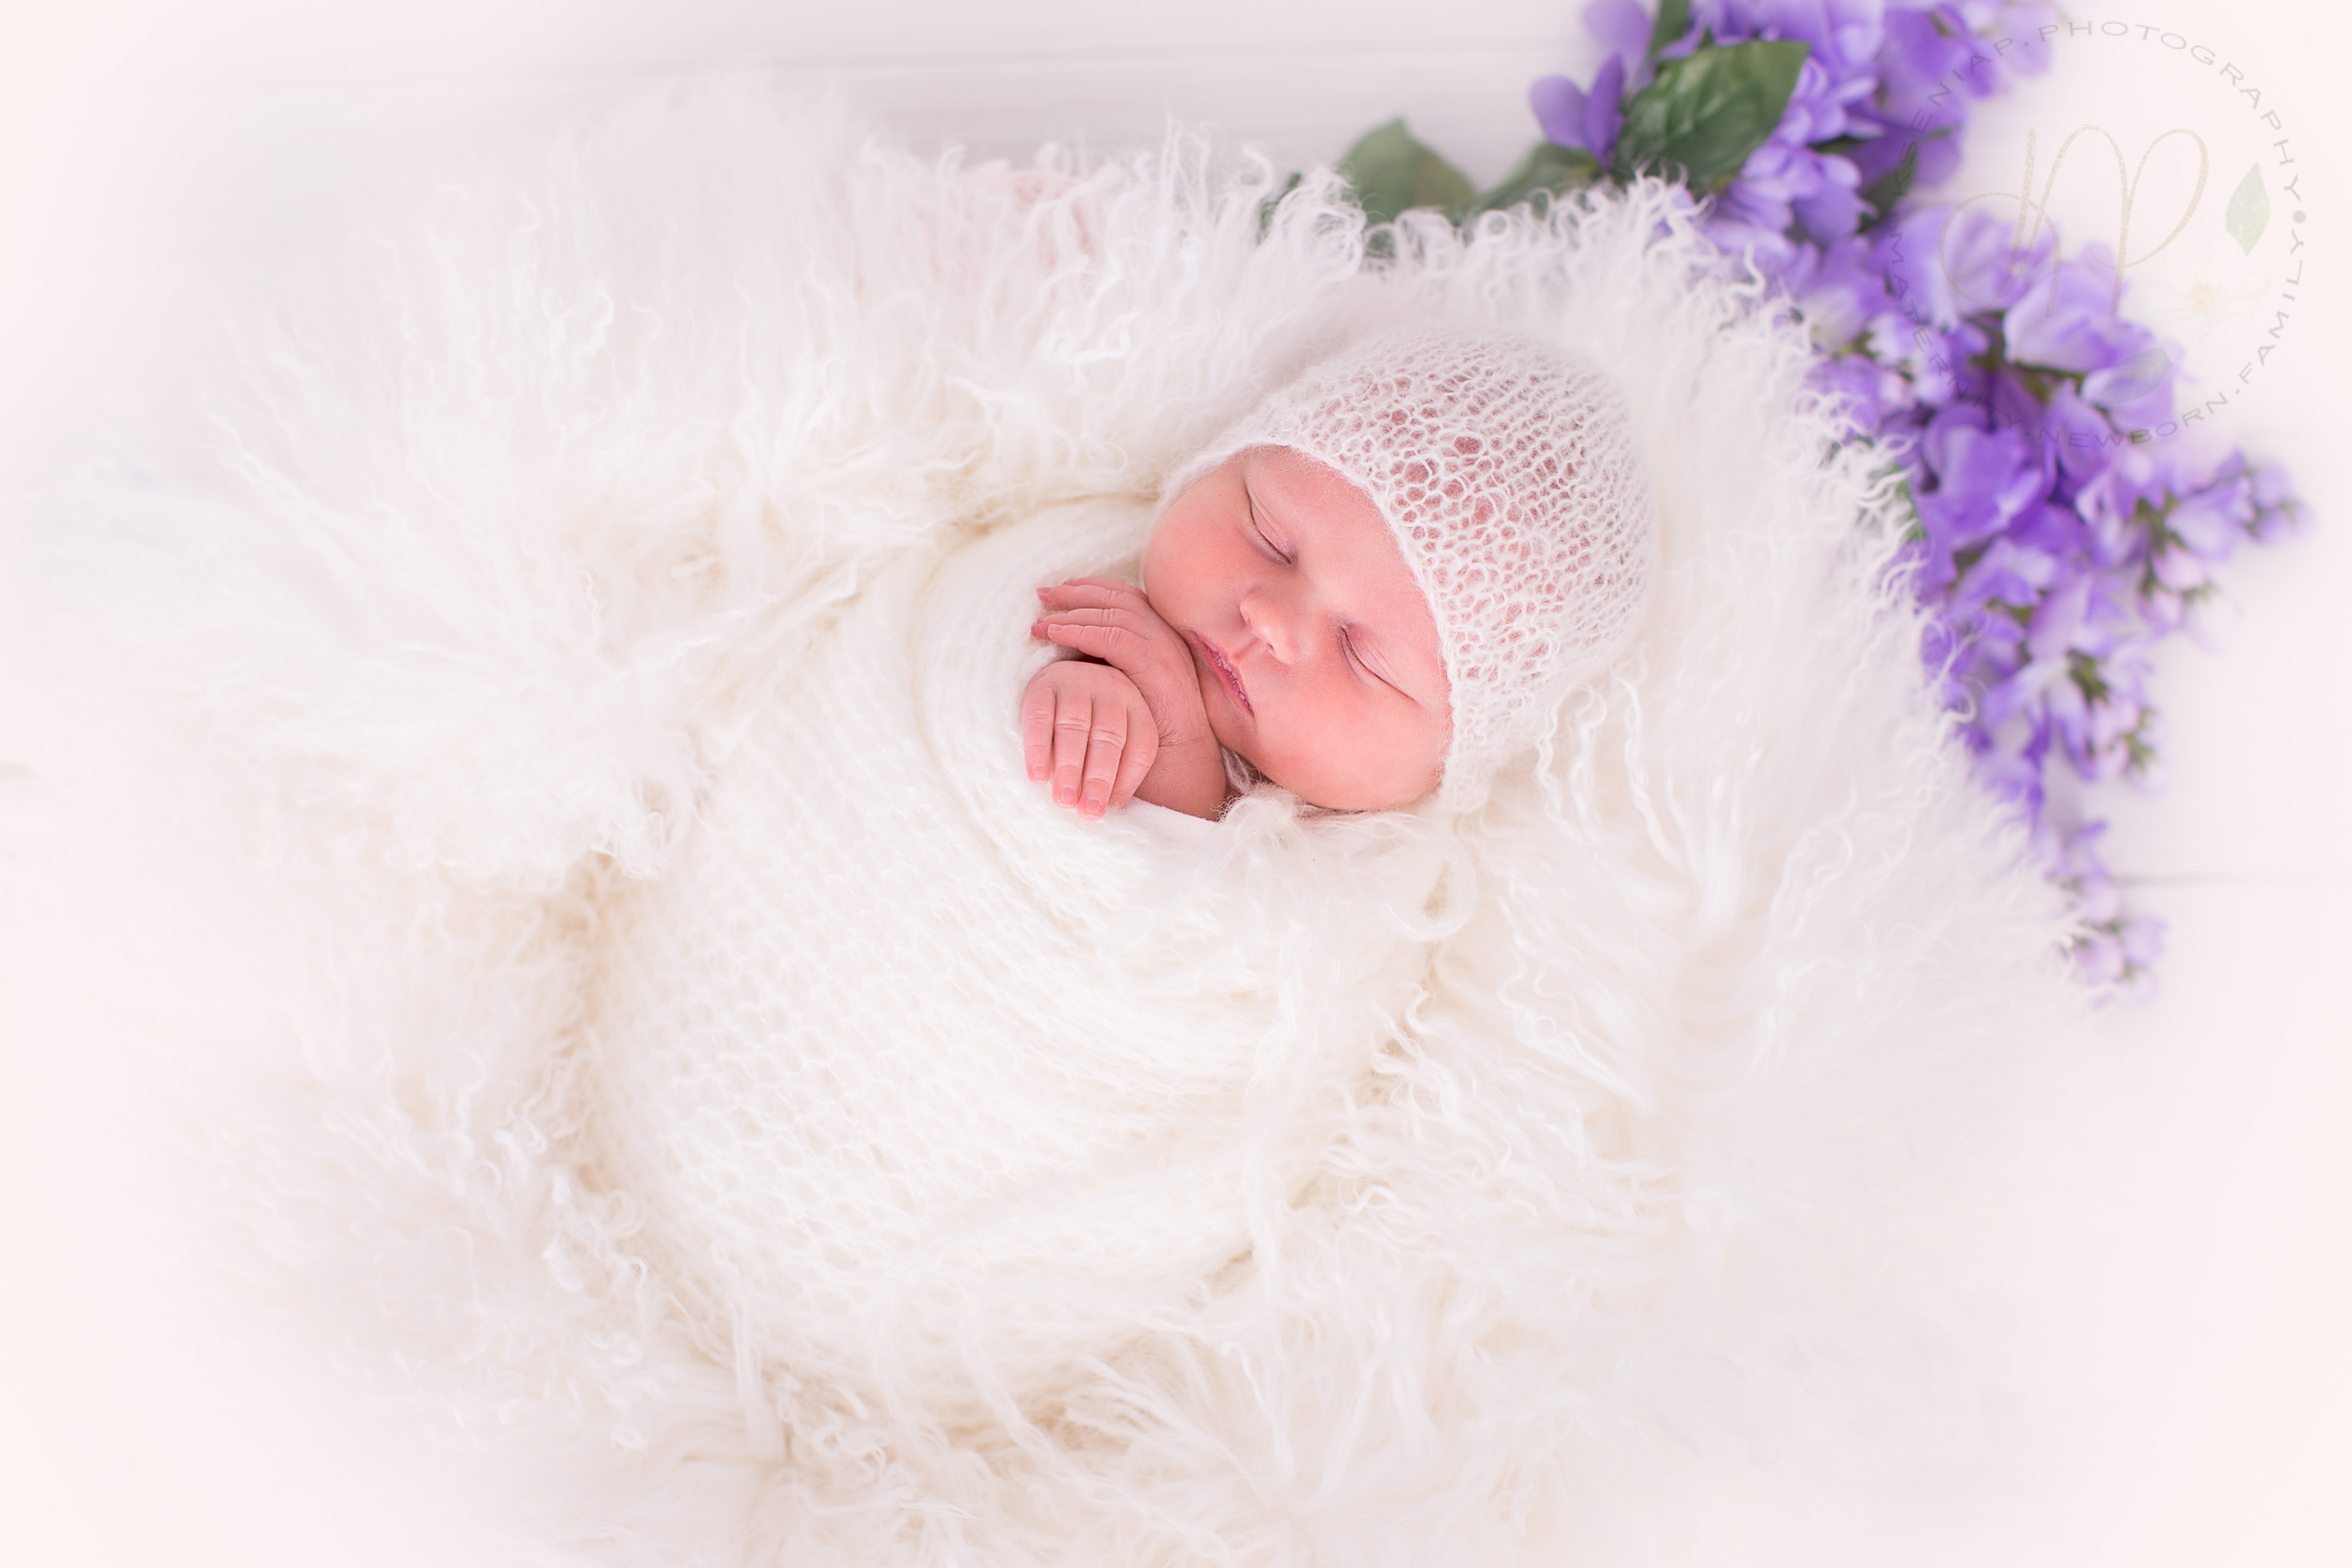 Image of newborn baby wrapped in white fabric with purple flowers in the background